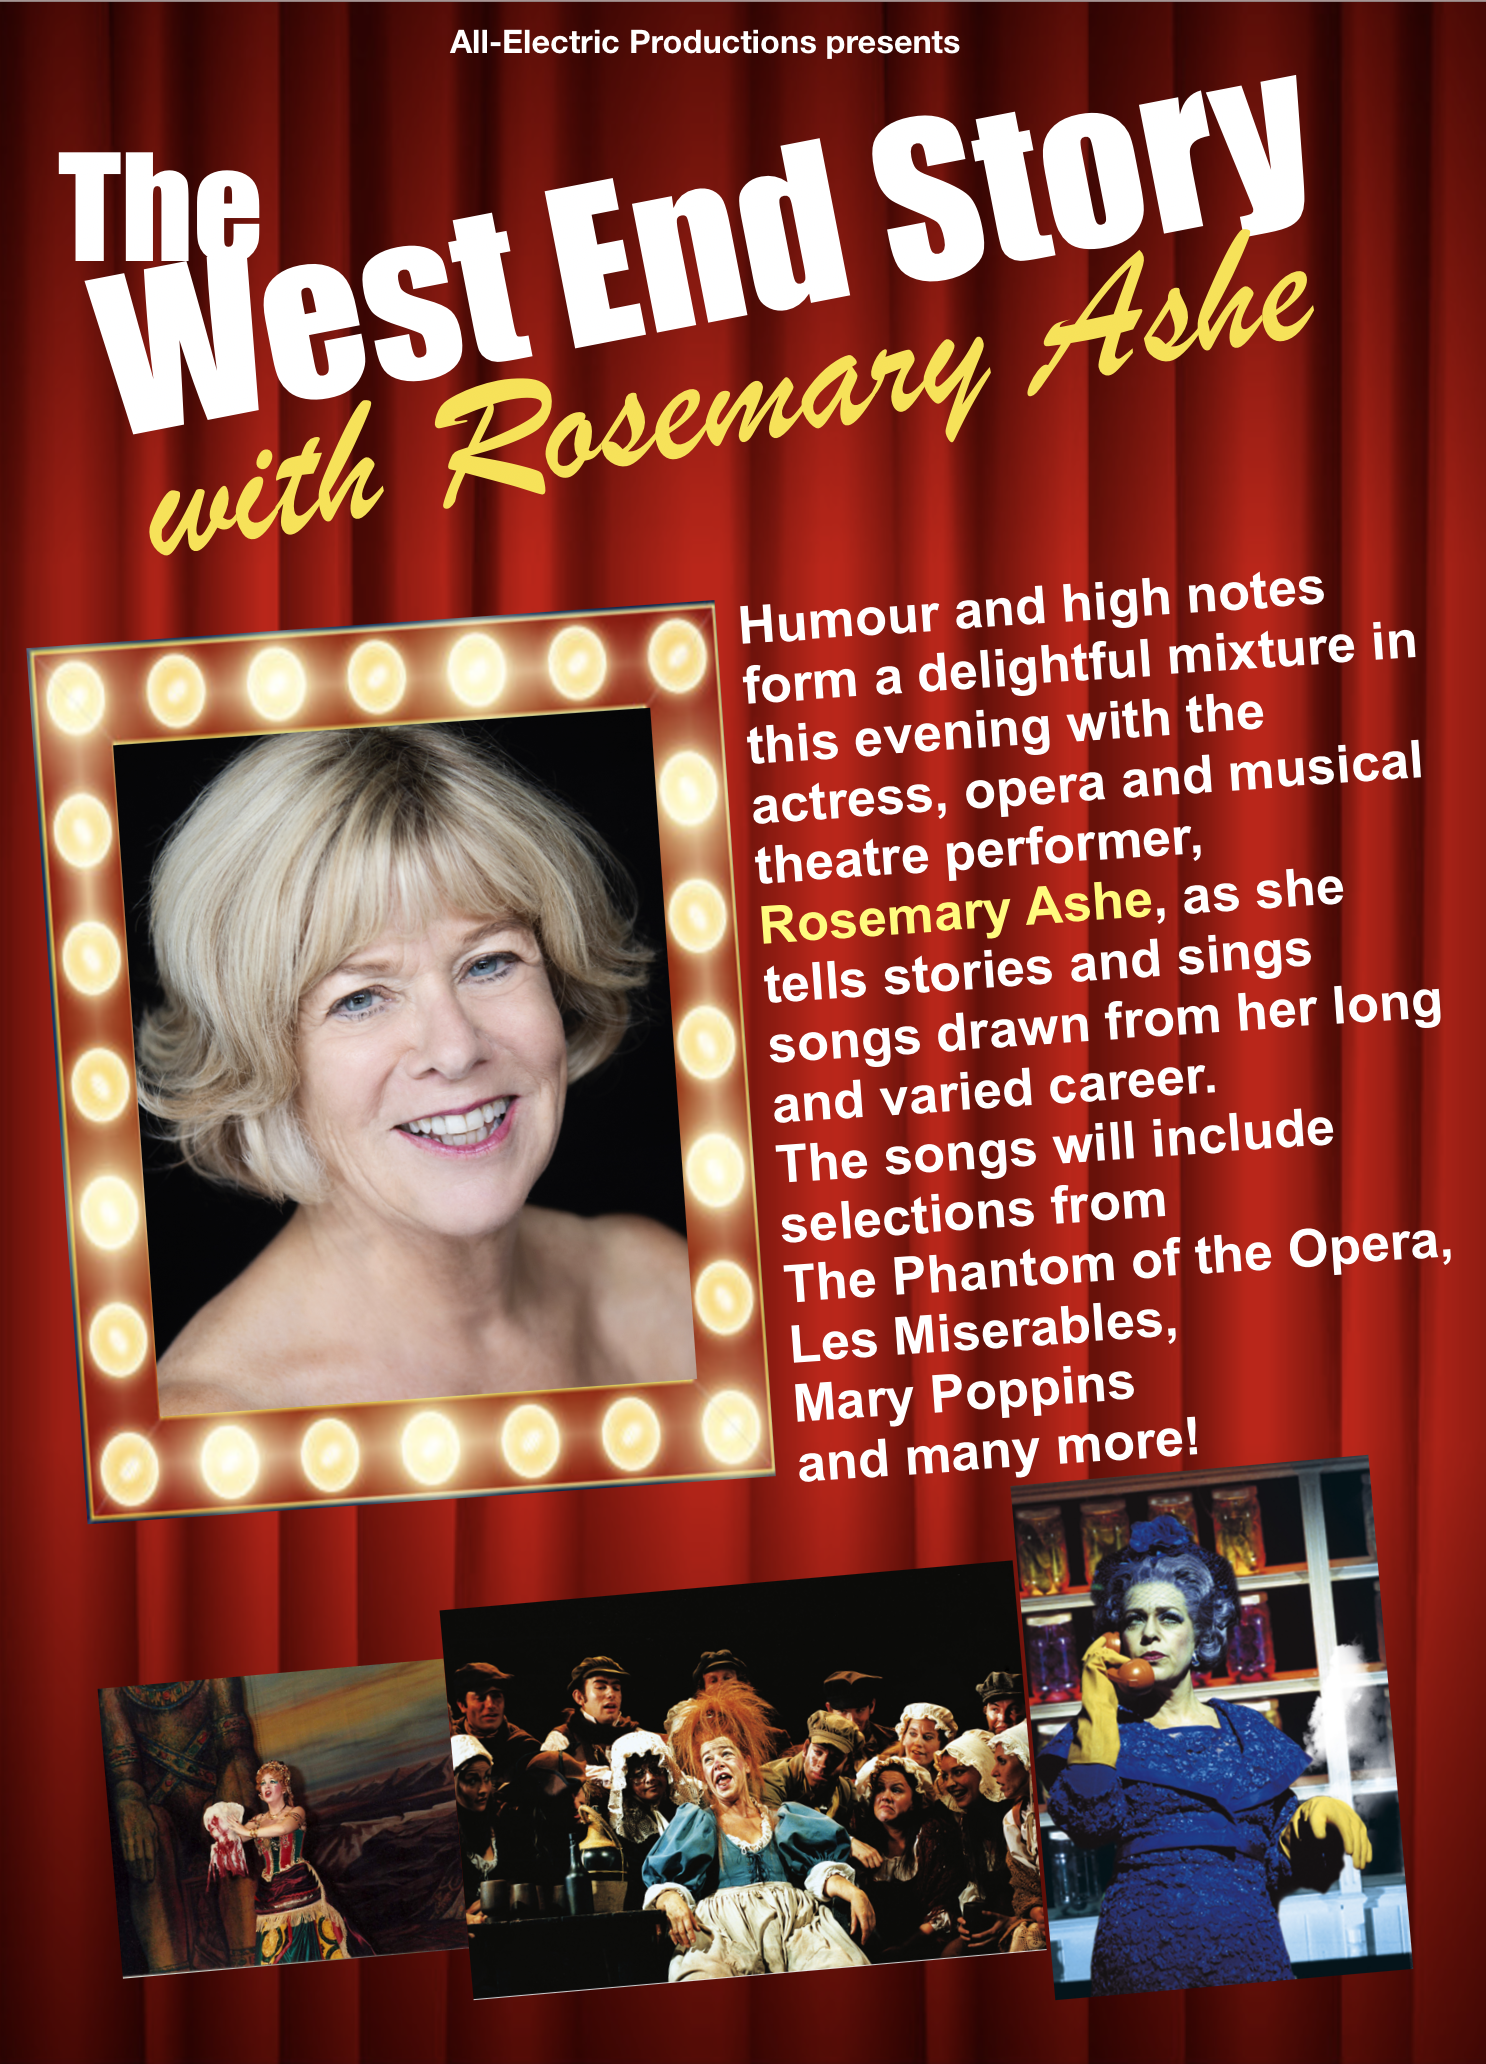 Rosie Ashe - The West End Story - All Electric Productions